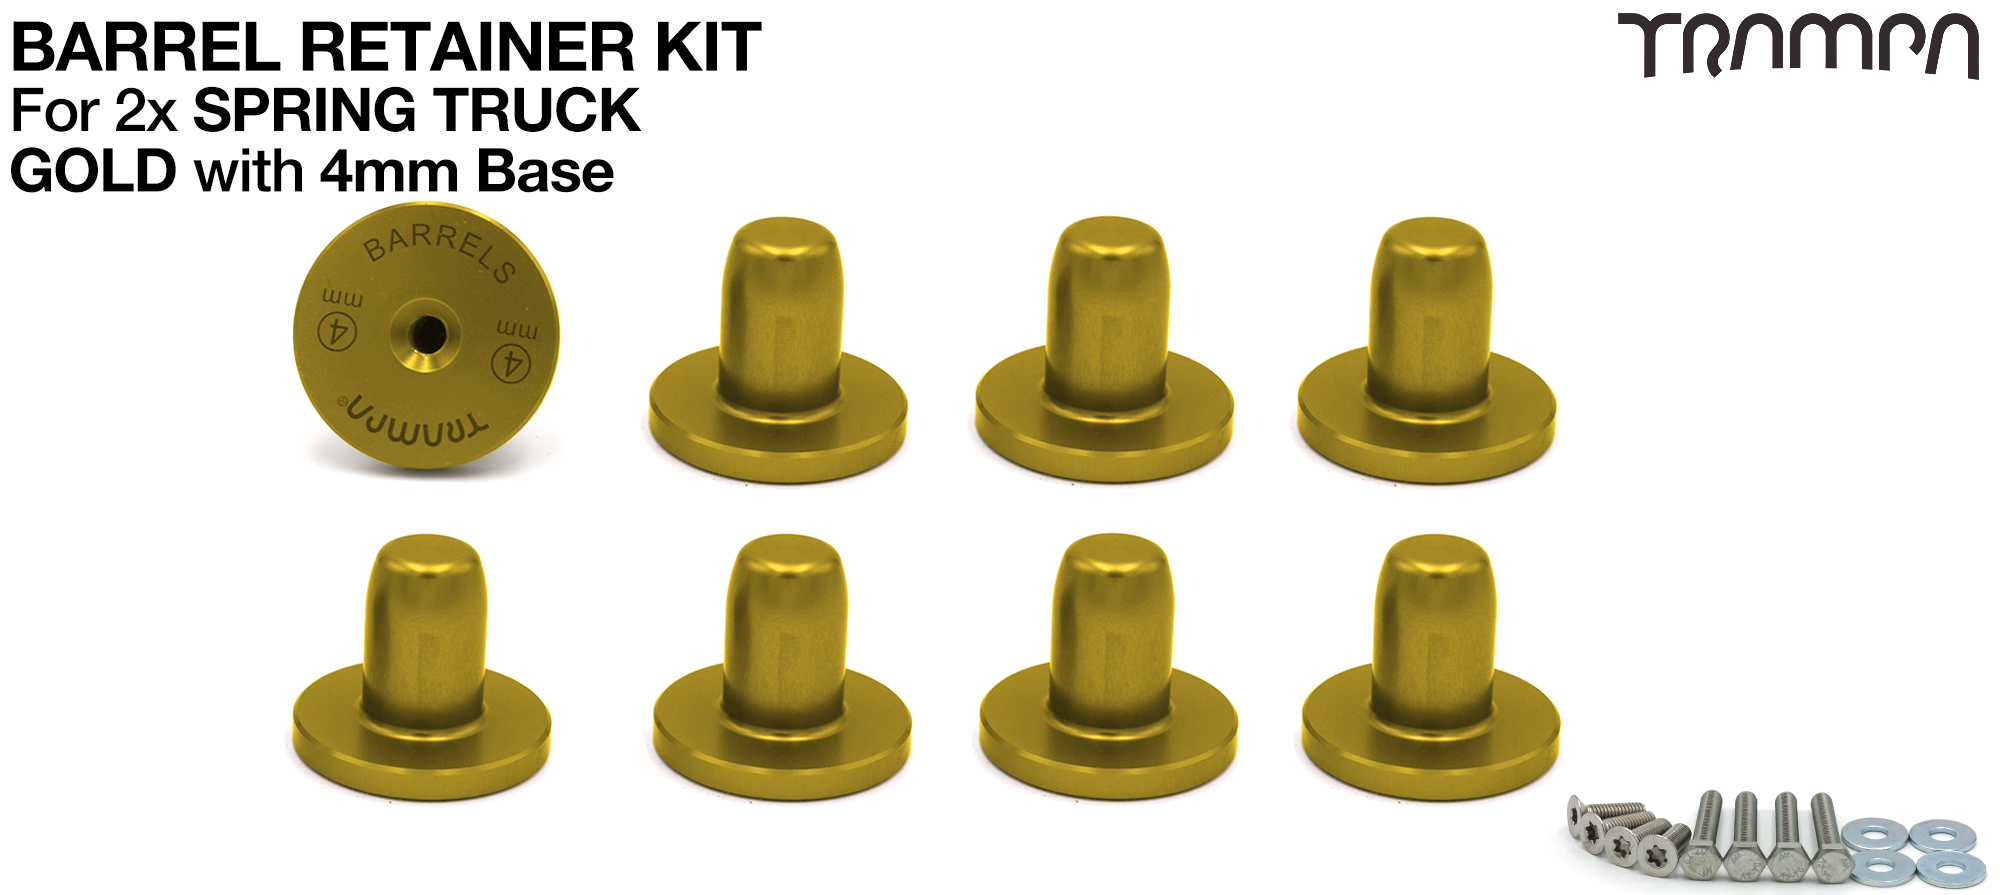 GOLD Barrel Retainers x8 with 4mm Base